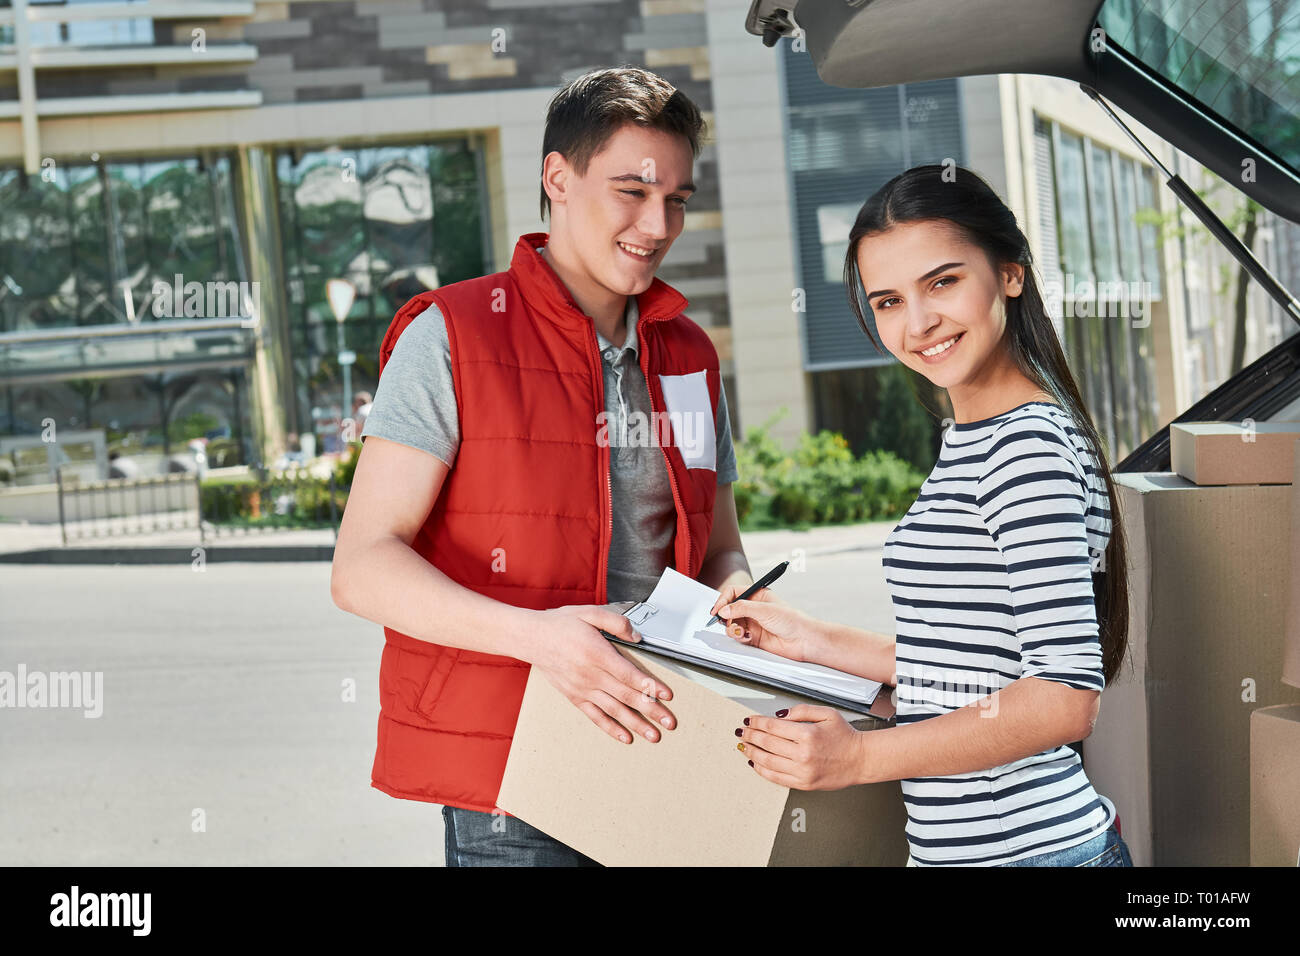 Cheerful man wearing red postal uniform is delivering parcel to a satisfied client. He brought her a parcel directly to the trunk of her car. Dark-haired woman is signing receipt of delivery package. Friendly worker, high quality delivery service. Outdoors. - Stock Image